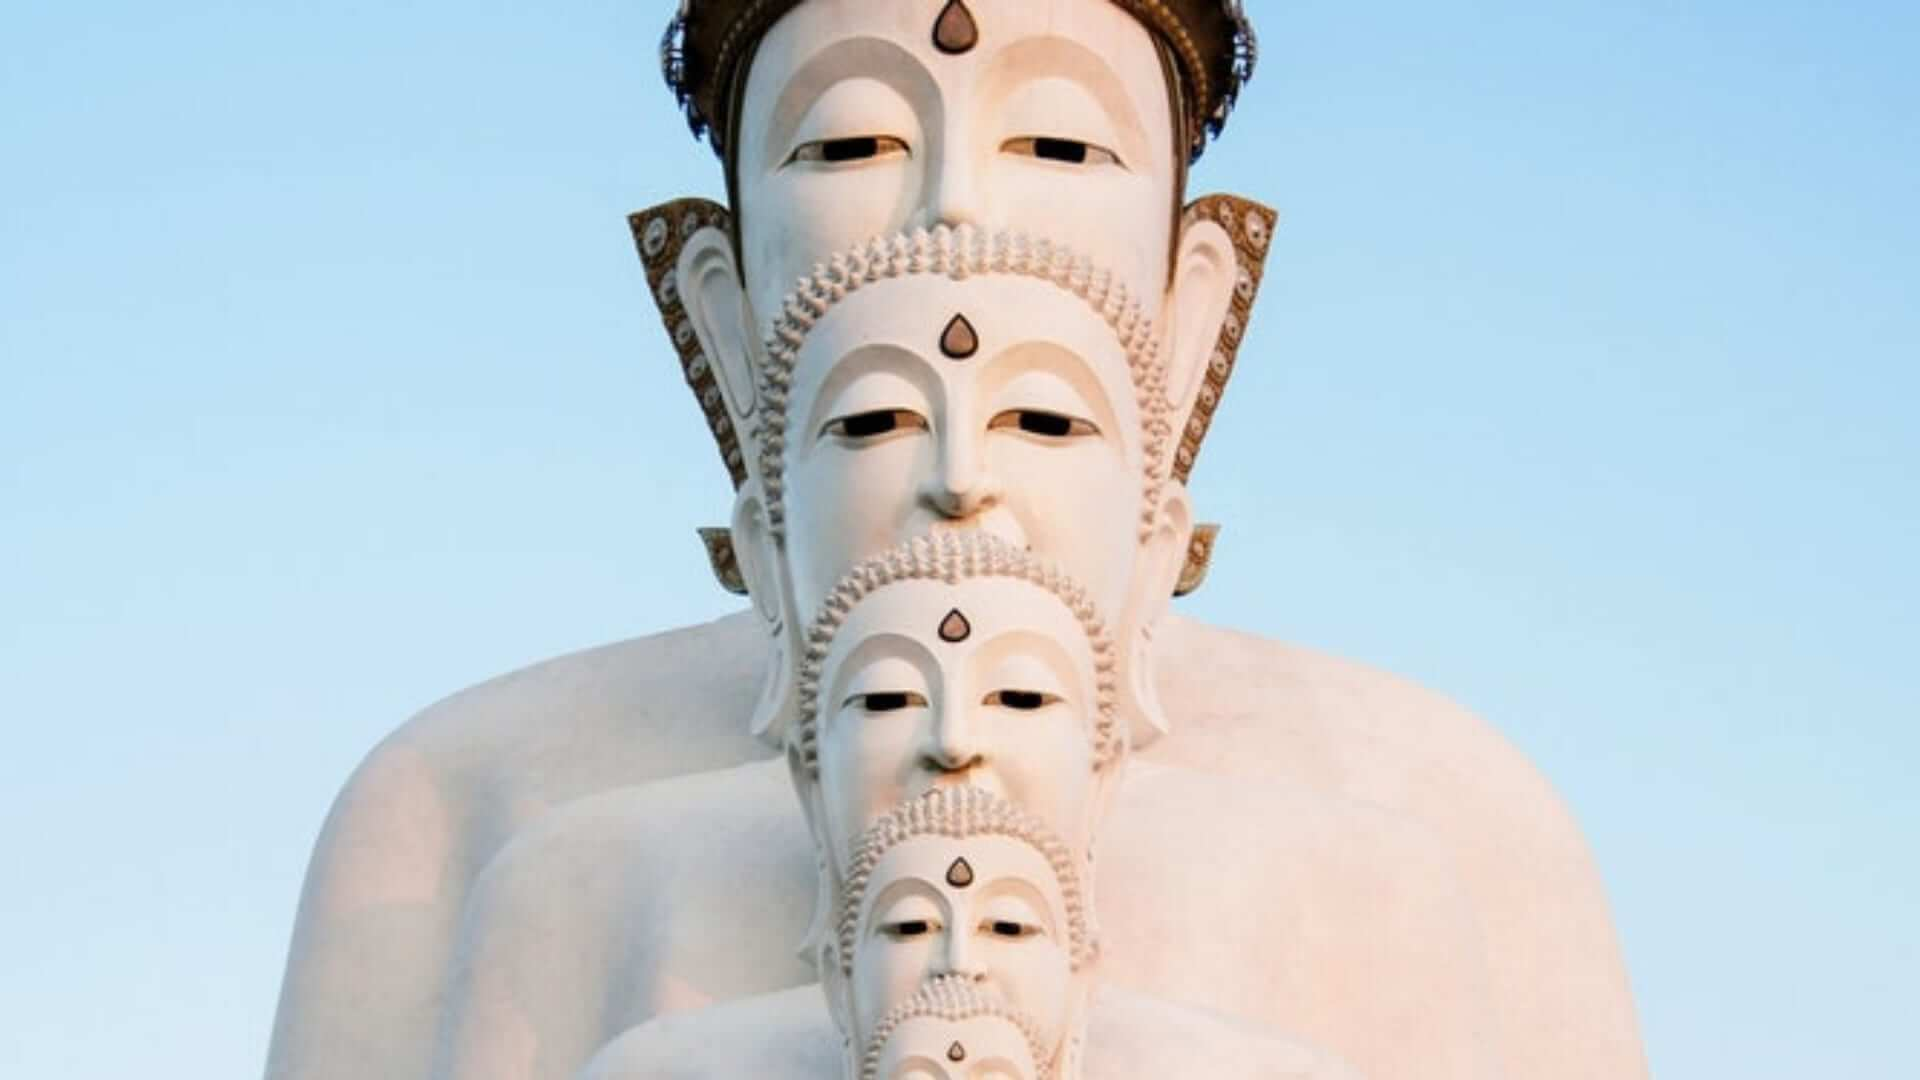 A white statue with five buddha heads on top of each other in Thailand.